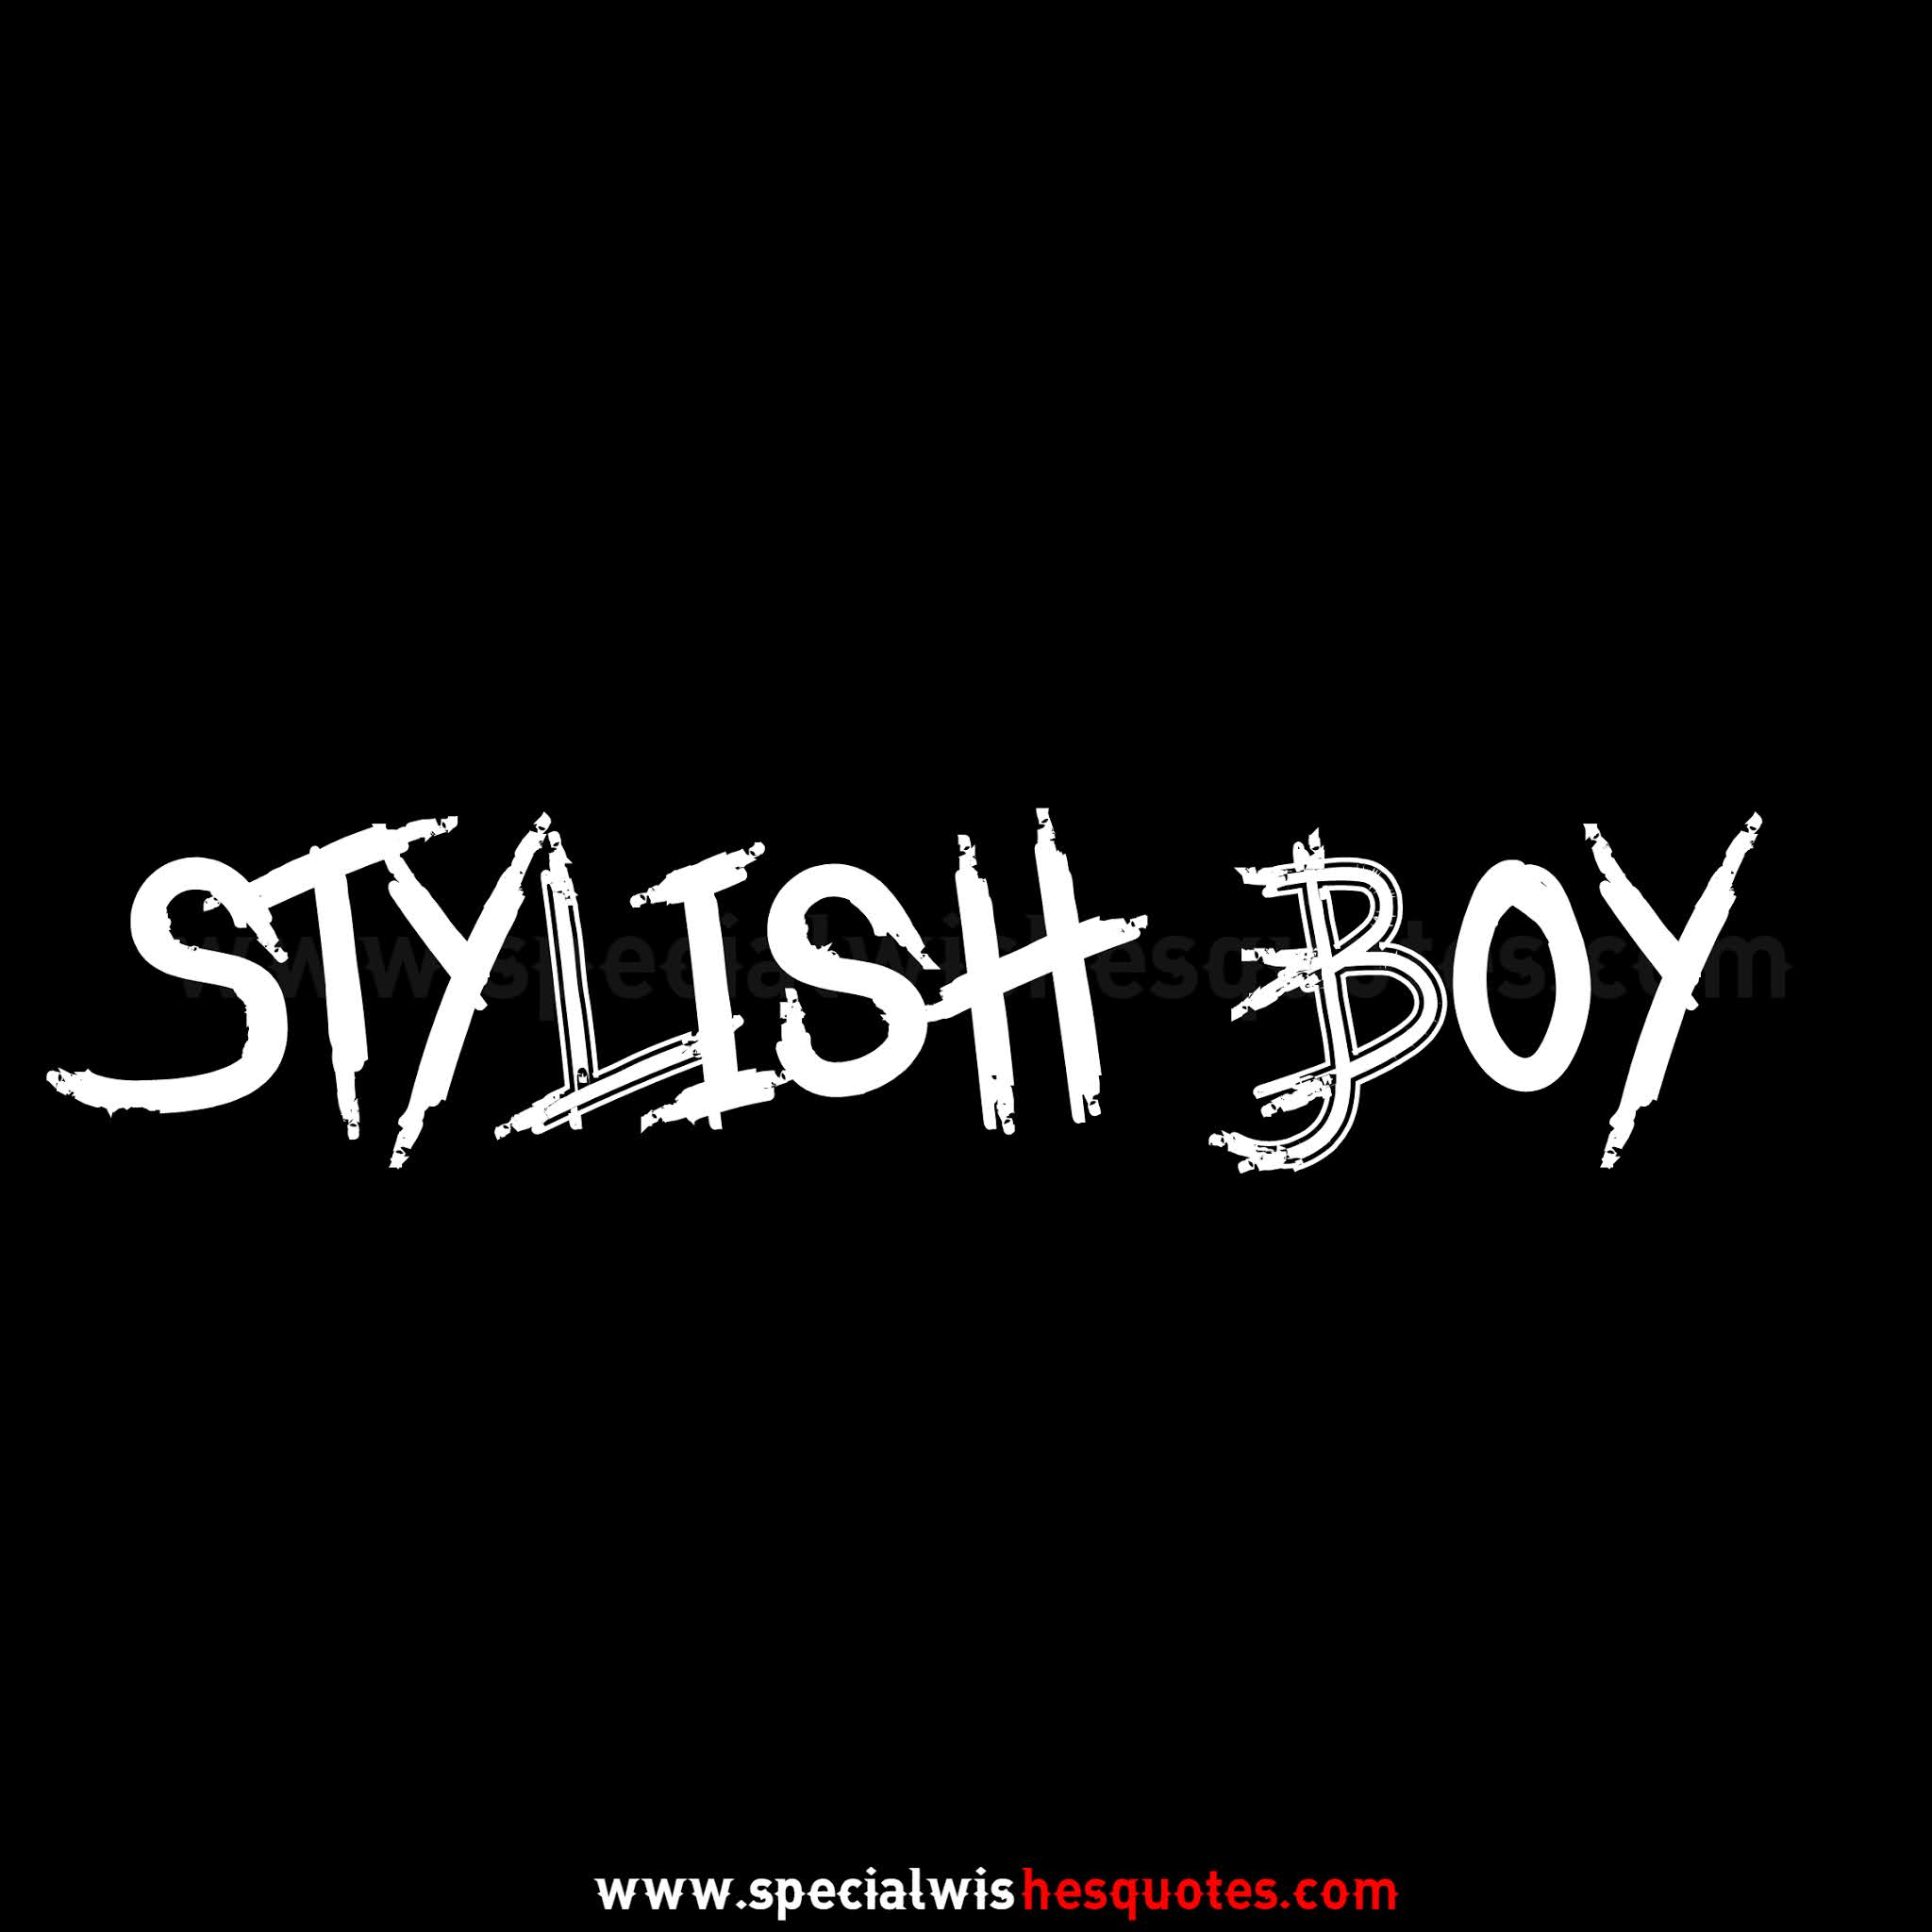 'Stylish Boys Dp For WhatsApp In HD Images Download'